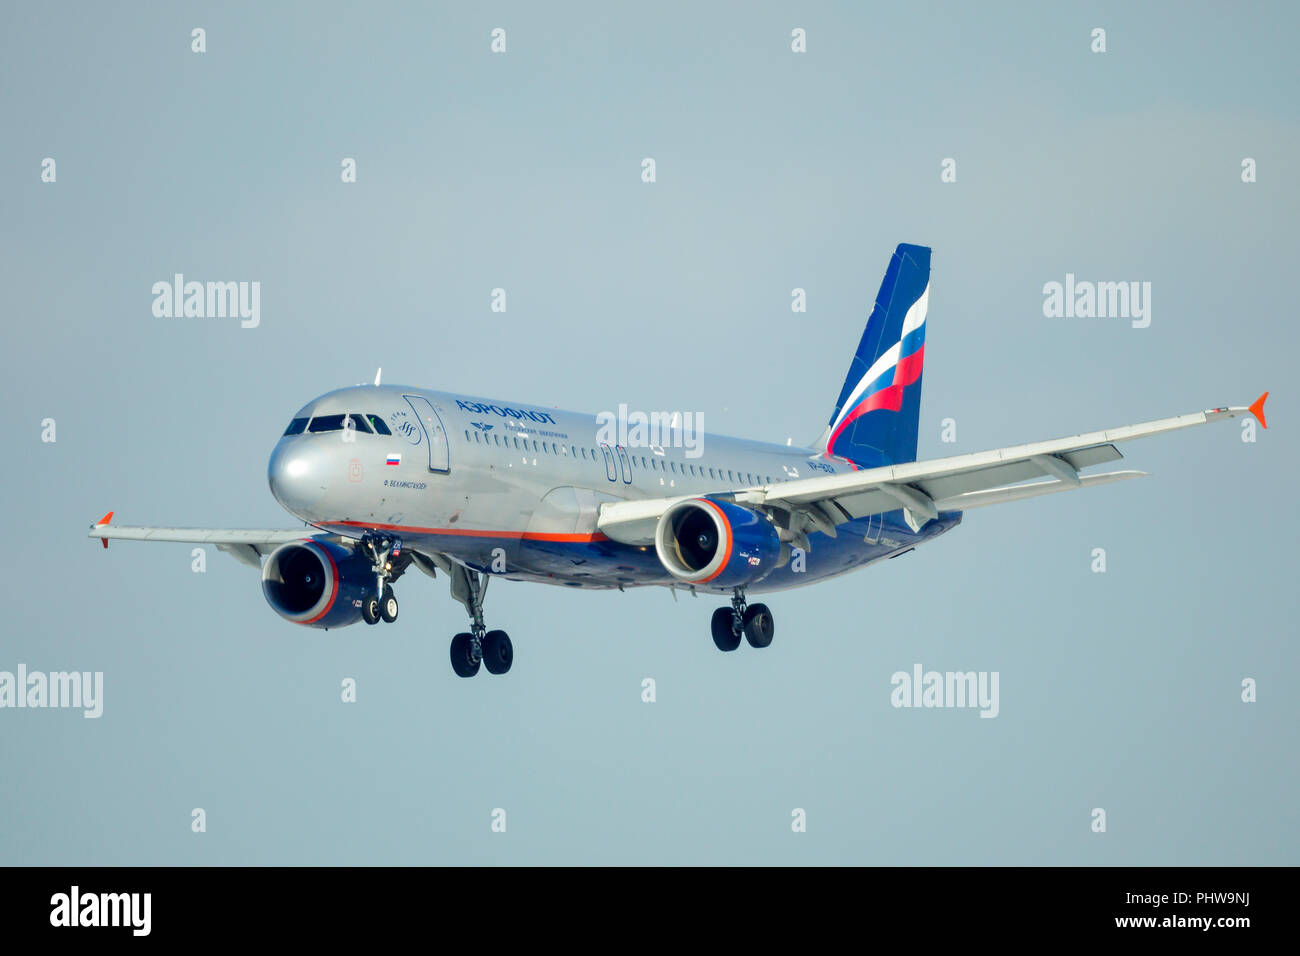 SAINT PETERSBURG, RUSSIA - APRIL 19, 2017: Flying the Airbus A320-214 (VP-BZR) airline «Aeroflot - Russian Airlines». Aircraft name «F. Bellinsgauzen» - Stock Image